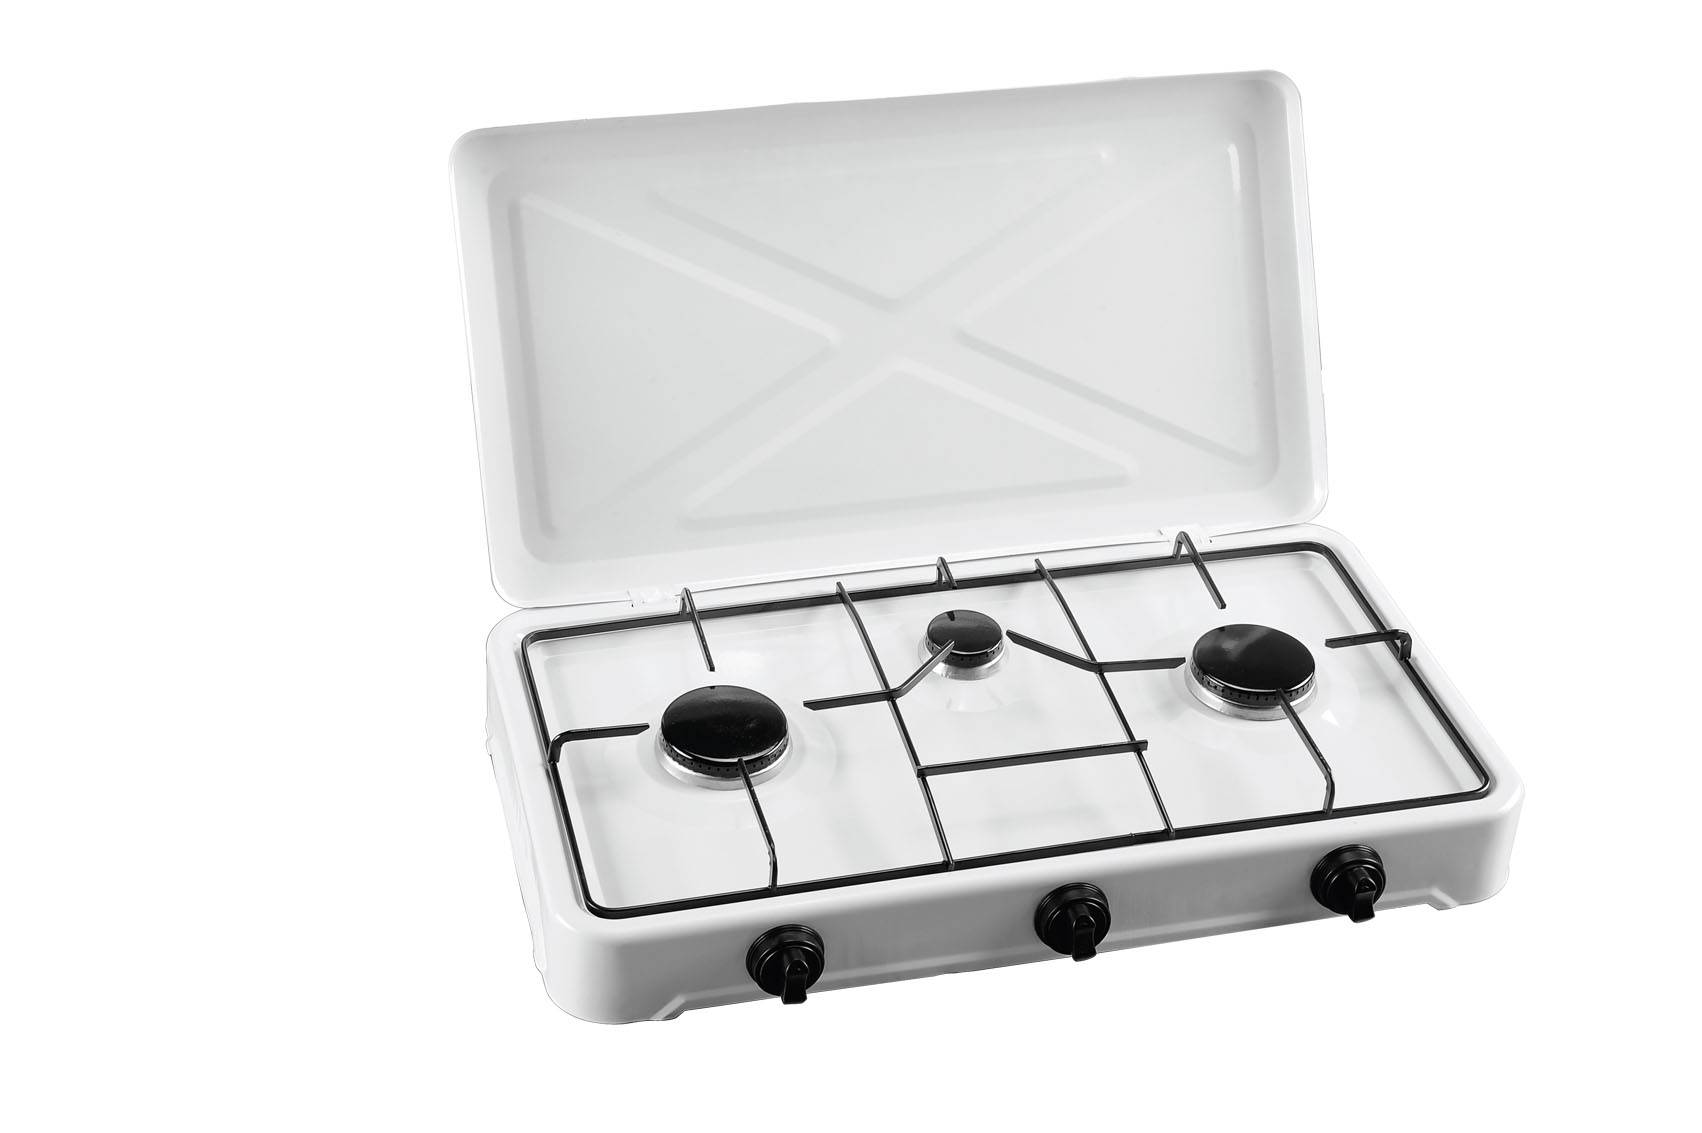 simple gas stove 3 burners